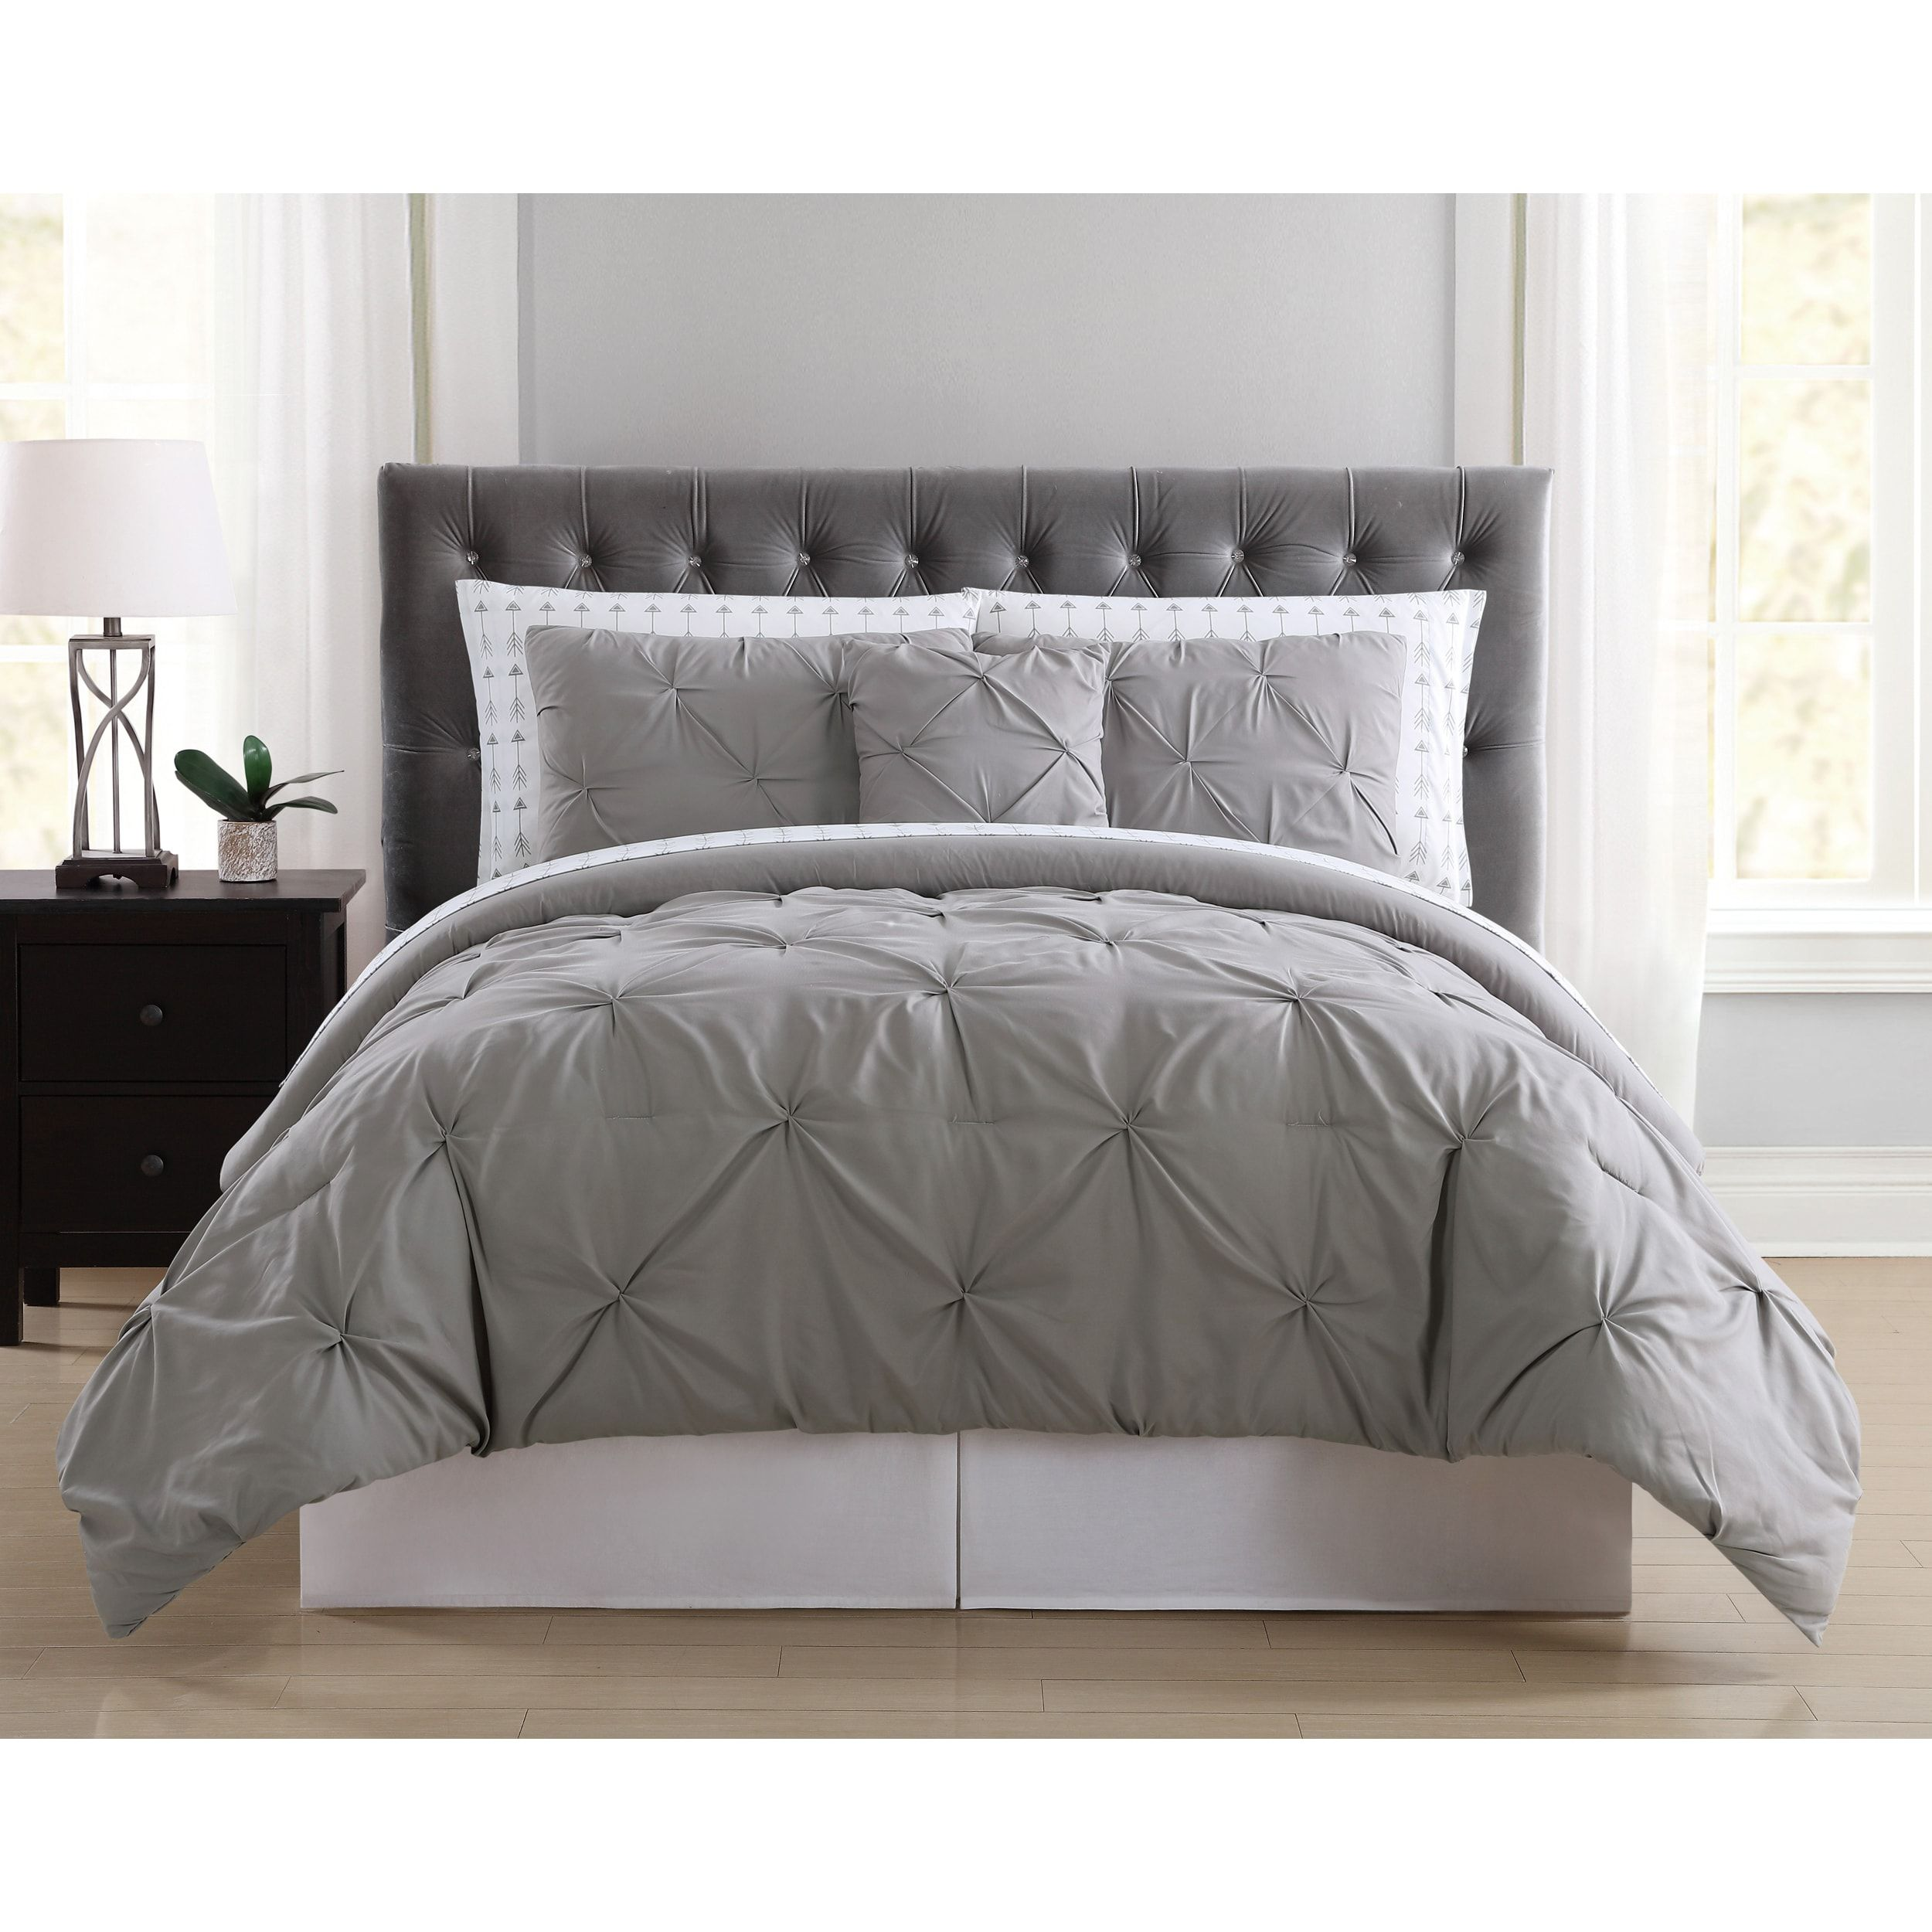 shams set pleat colors com walmart home vcny piece with solid ip pinch multiple comforter maya euro